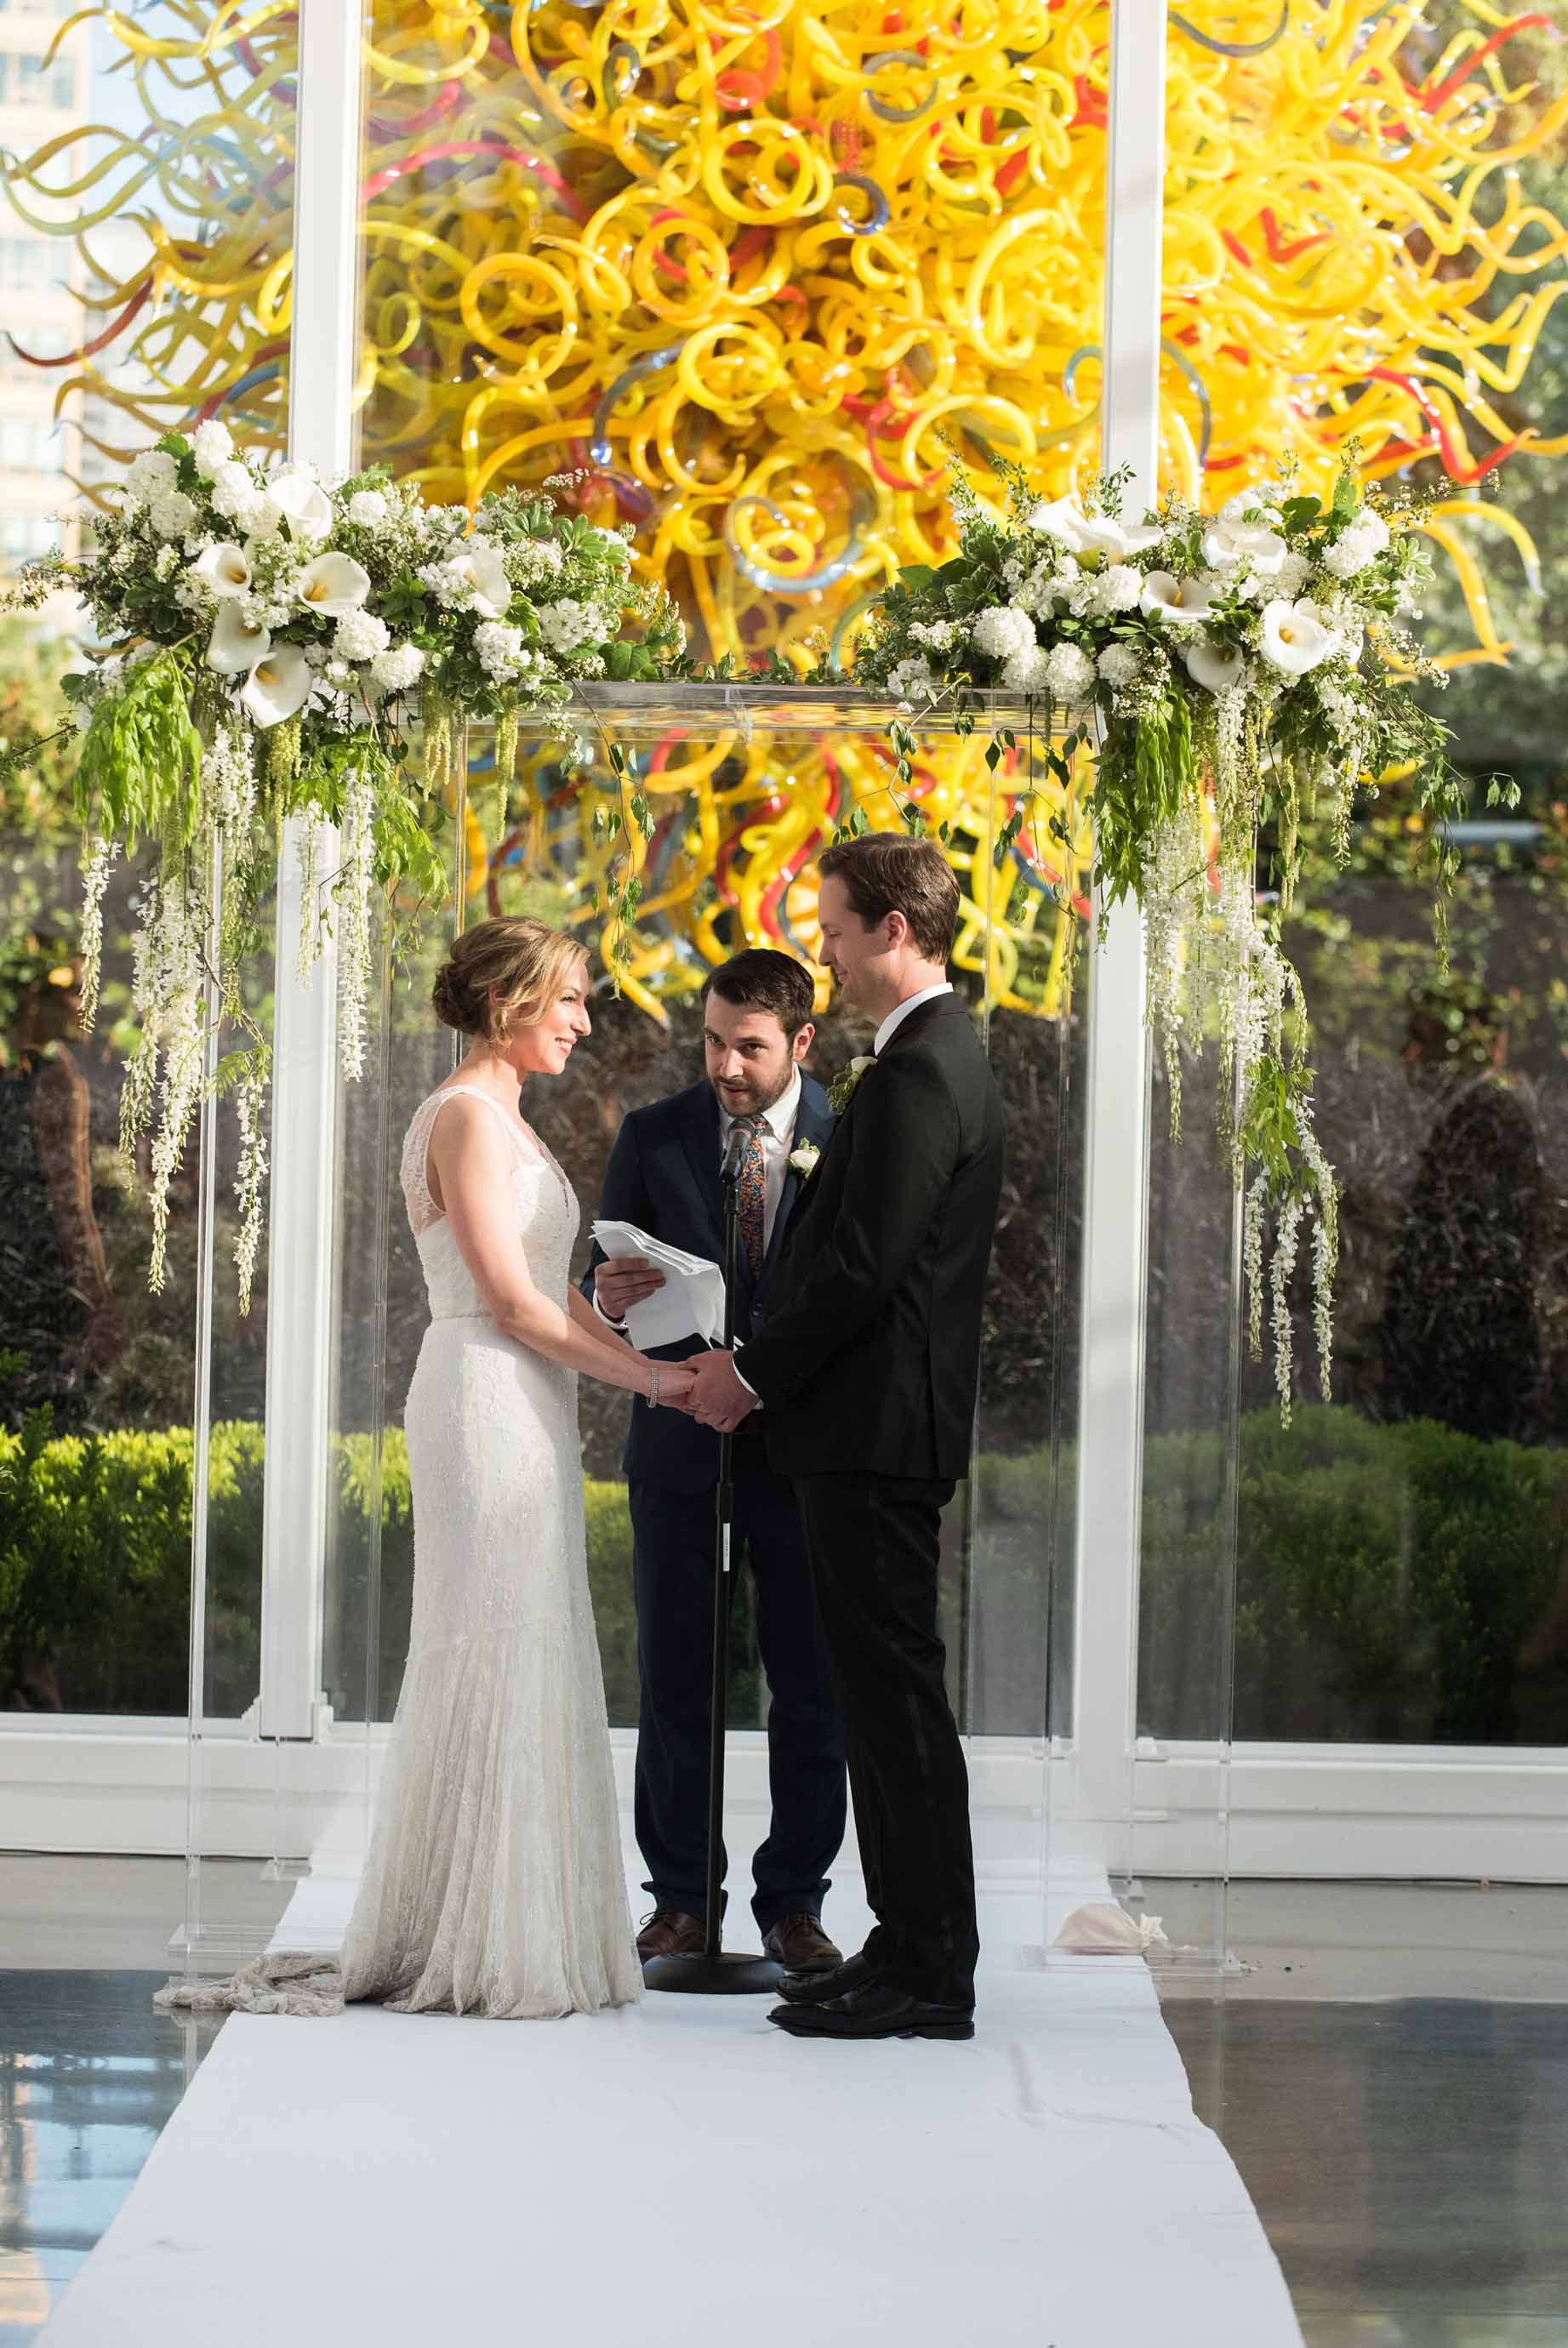 Bride and groom at their Chihuly wedding standing in front of lucite chuppah decorated with greenery and white flowers